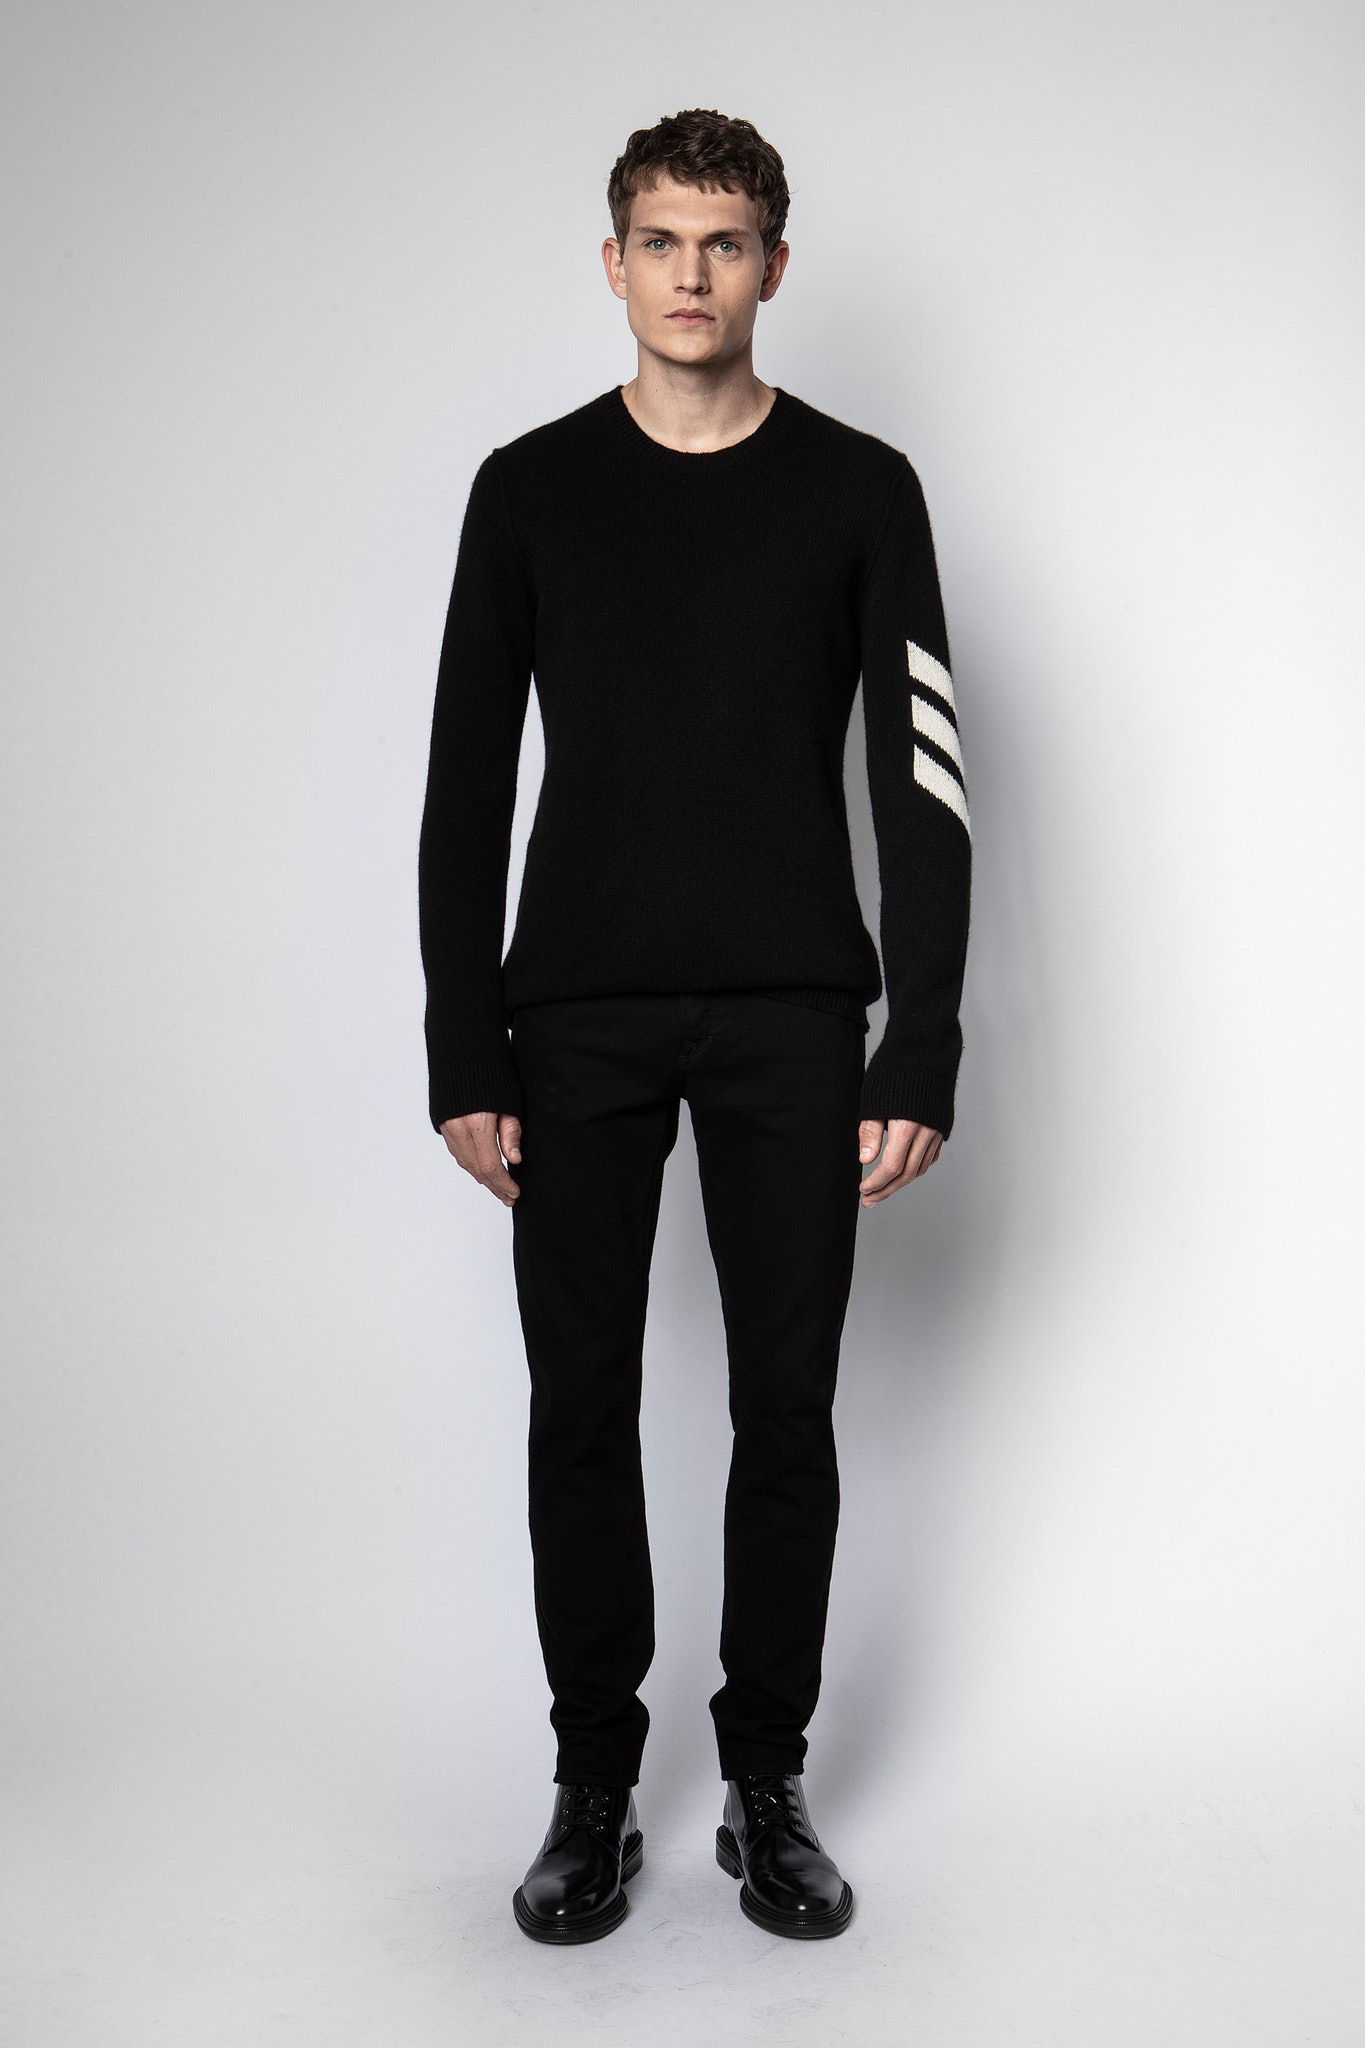 Kennedy Arrow Cachemire Sweater